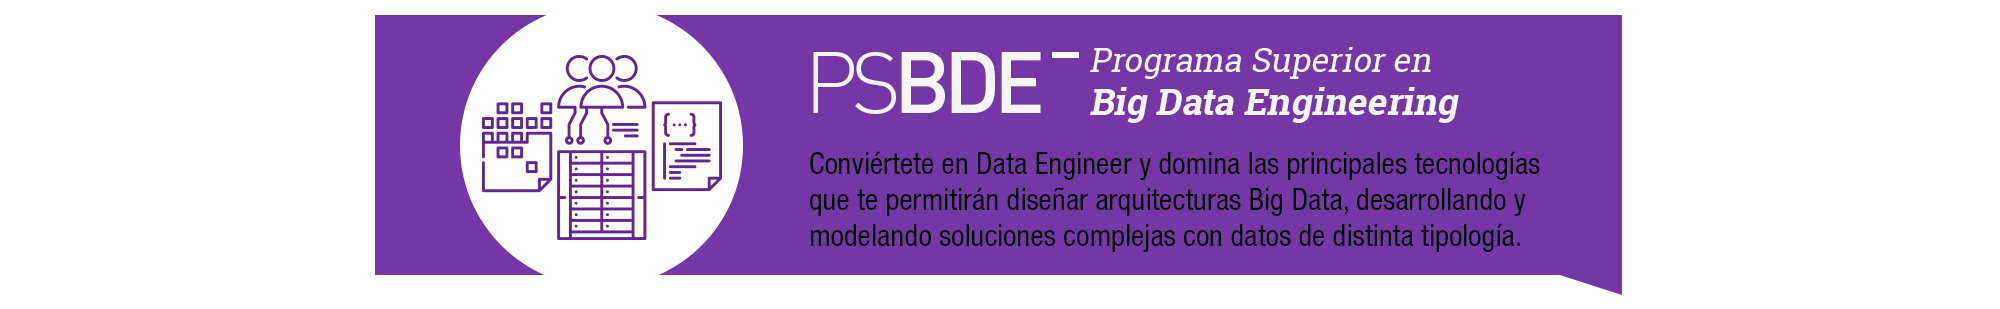 programa_superior_big_data_engineer